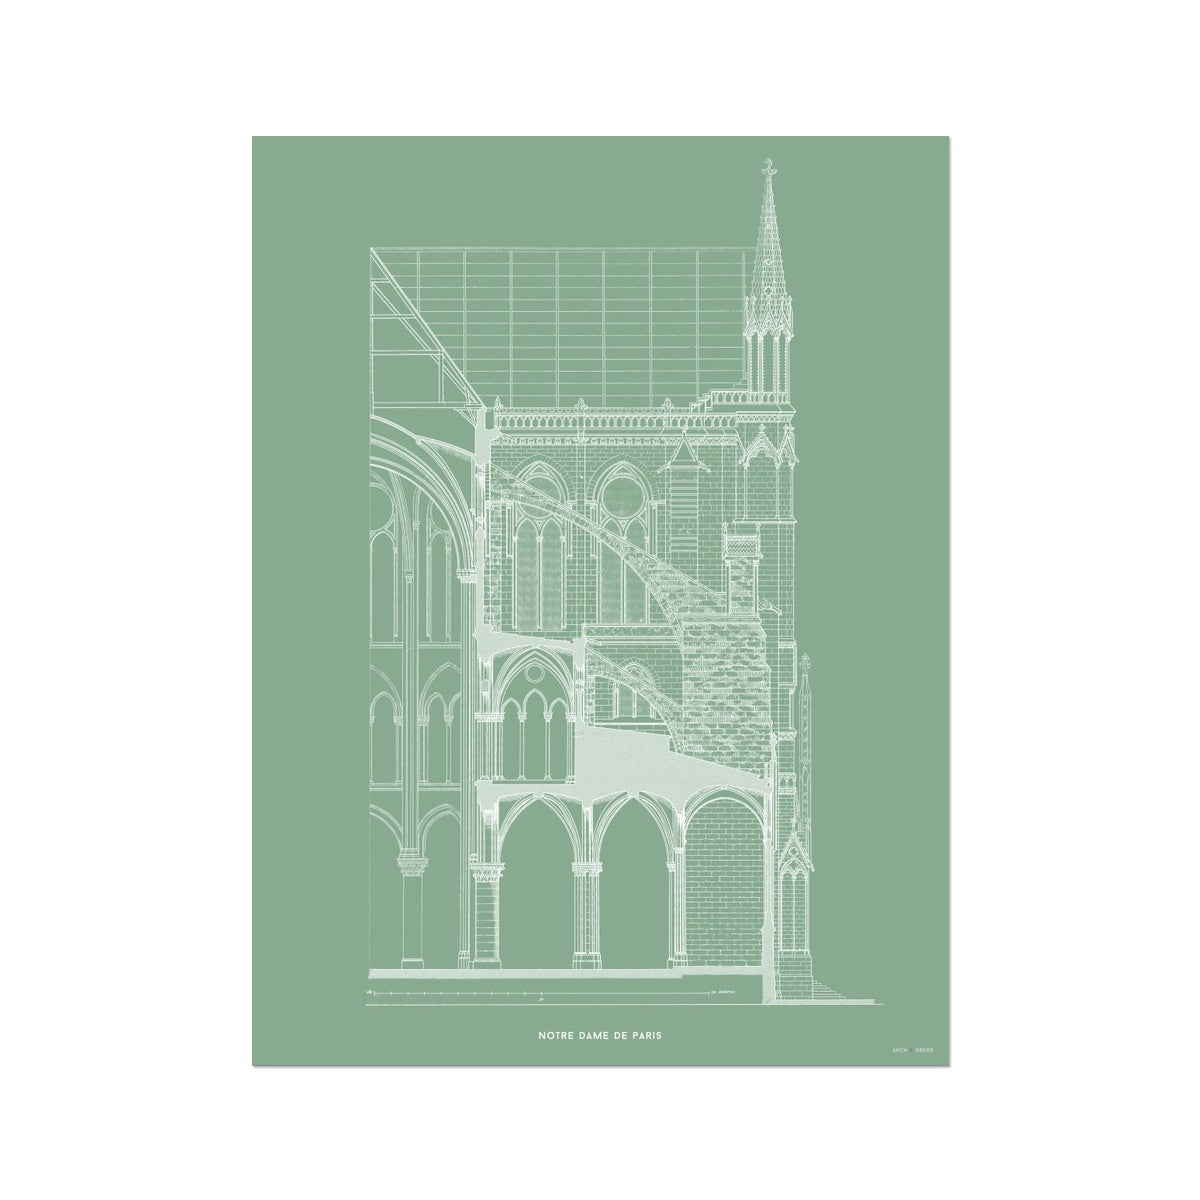 Notre Dame de Paris - Buttress Cross Section - Green -  Etching Paper Print